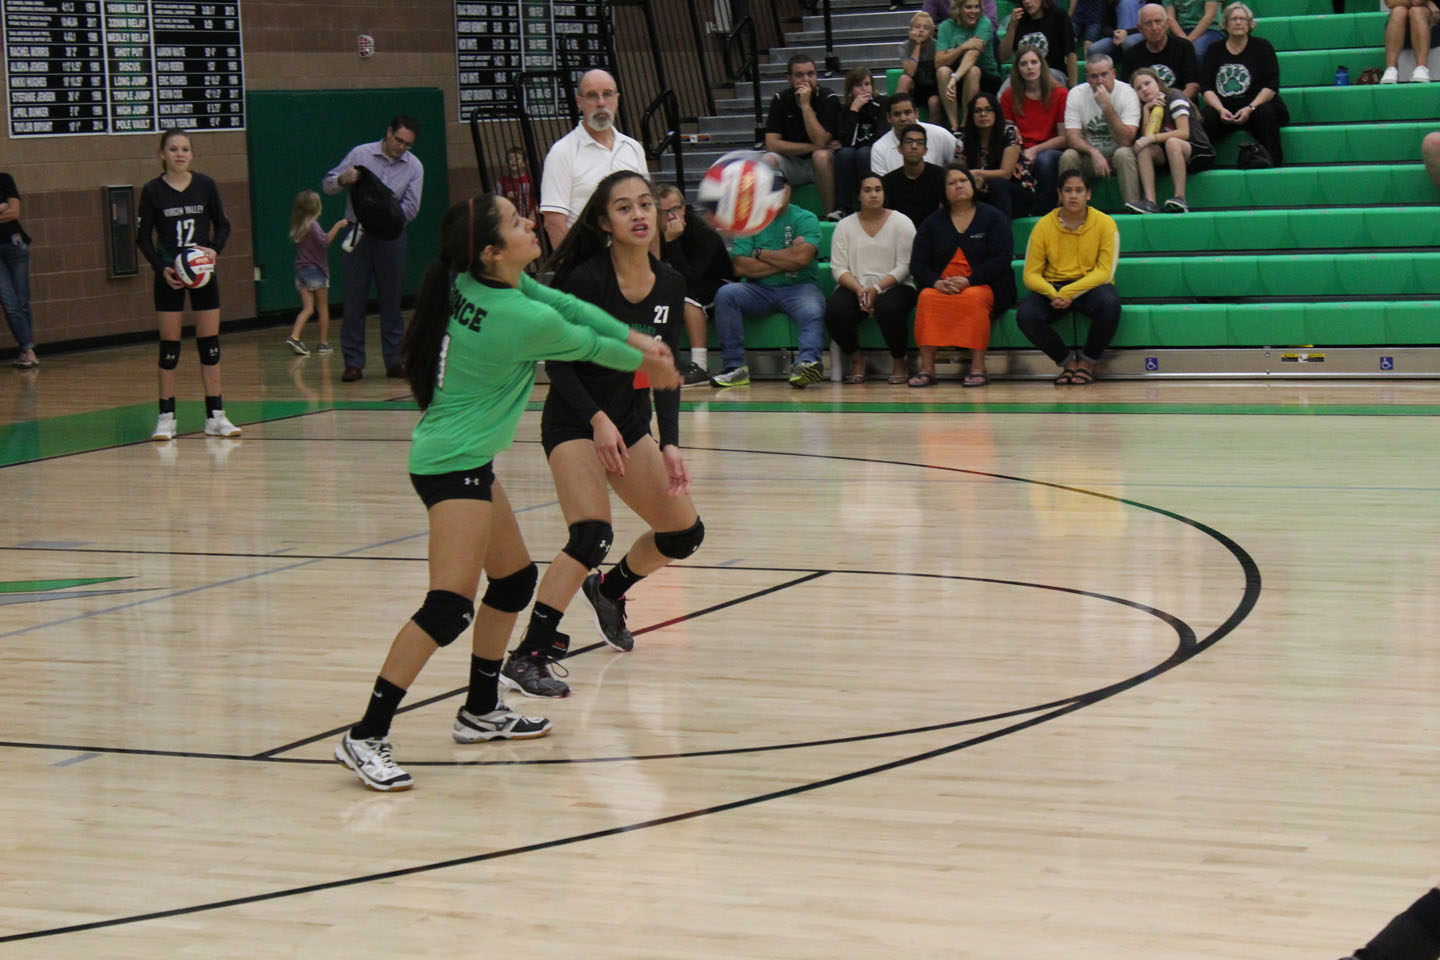 Lady Bulldogs defeat Sunrise in five games